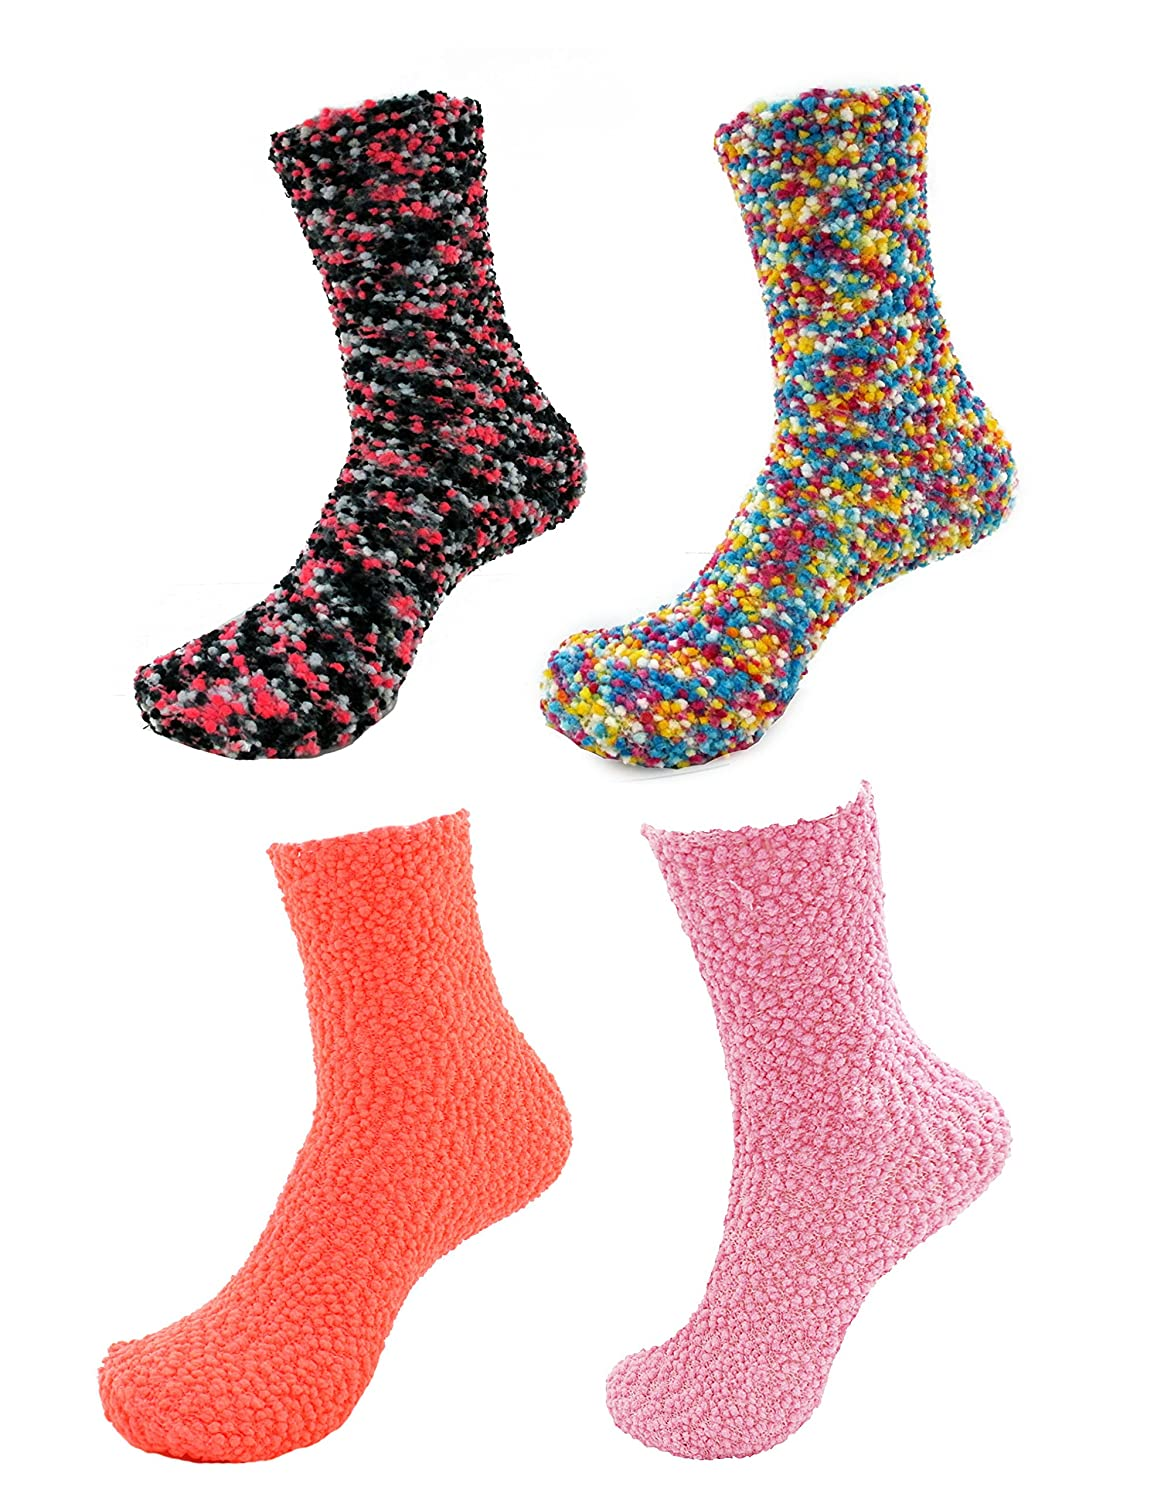 1dcf9bd6845 85%OFF Super Soft Warm Microfiber Fuzzy Socks - 4 Pairs - Value Pack ·  Conte Women s Black (Nero) Pantyhose Tights with a Thigh High Stockings ...